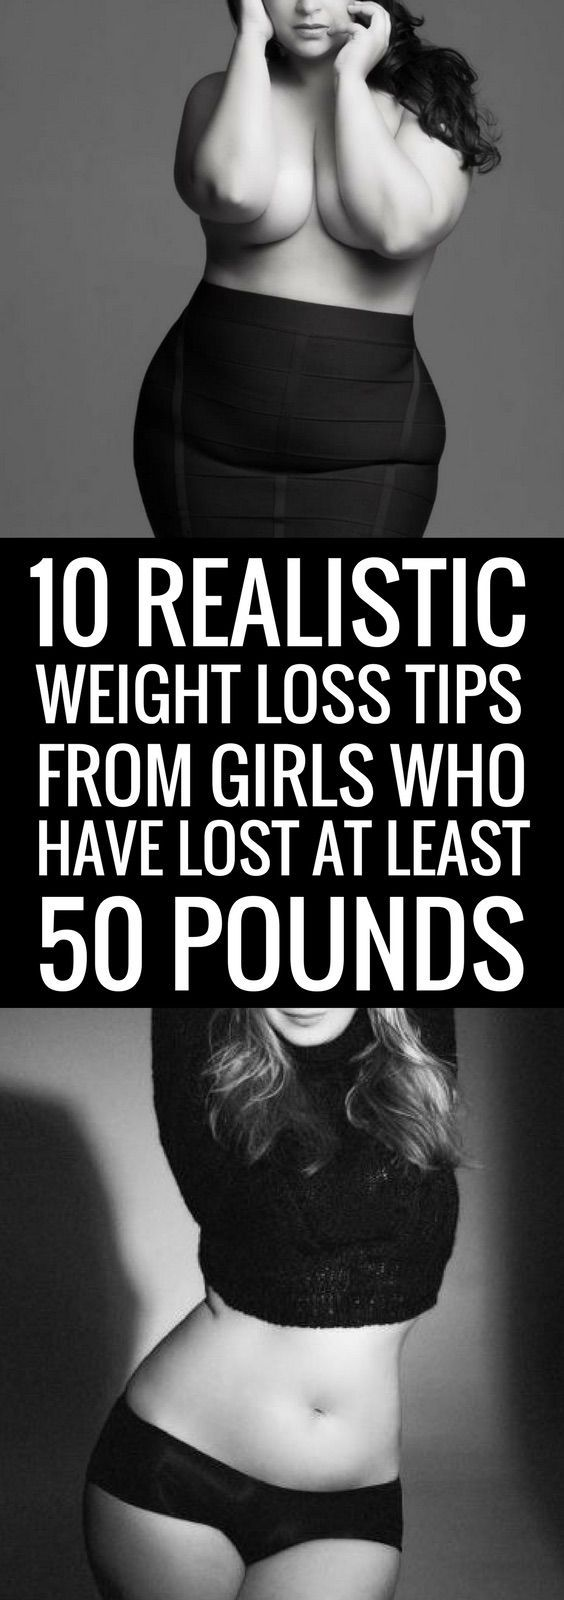 10 Weight Loss Tips From Girls Who Have Lost At Least 50 Pounds  #wieghtloss  #beautyhacks